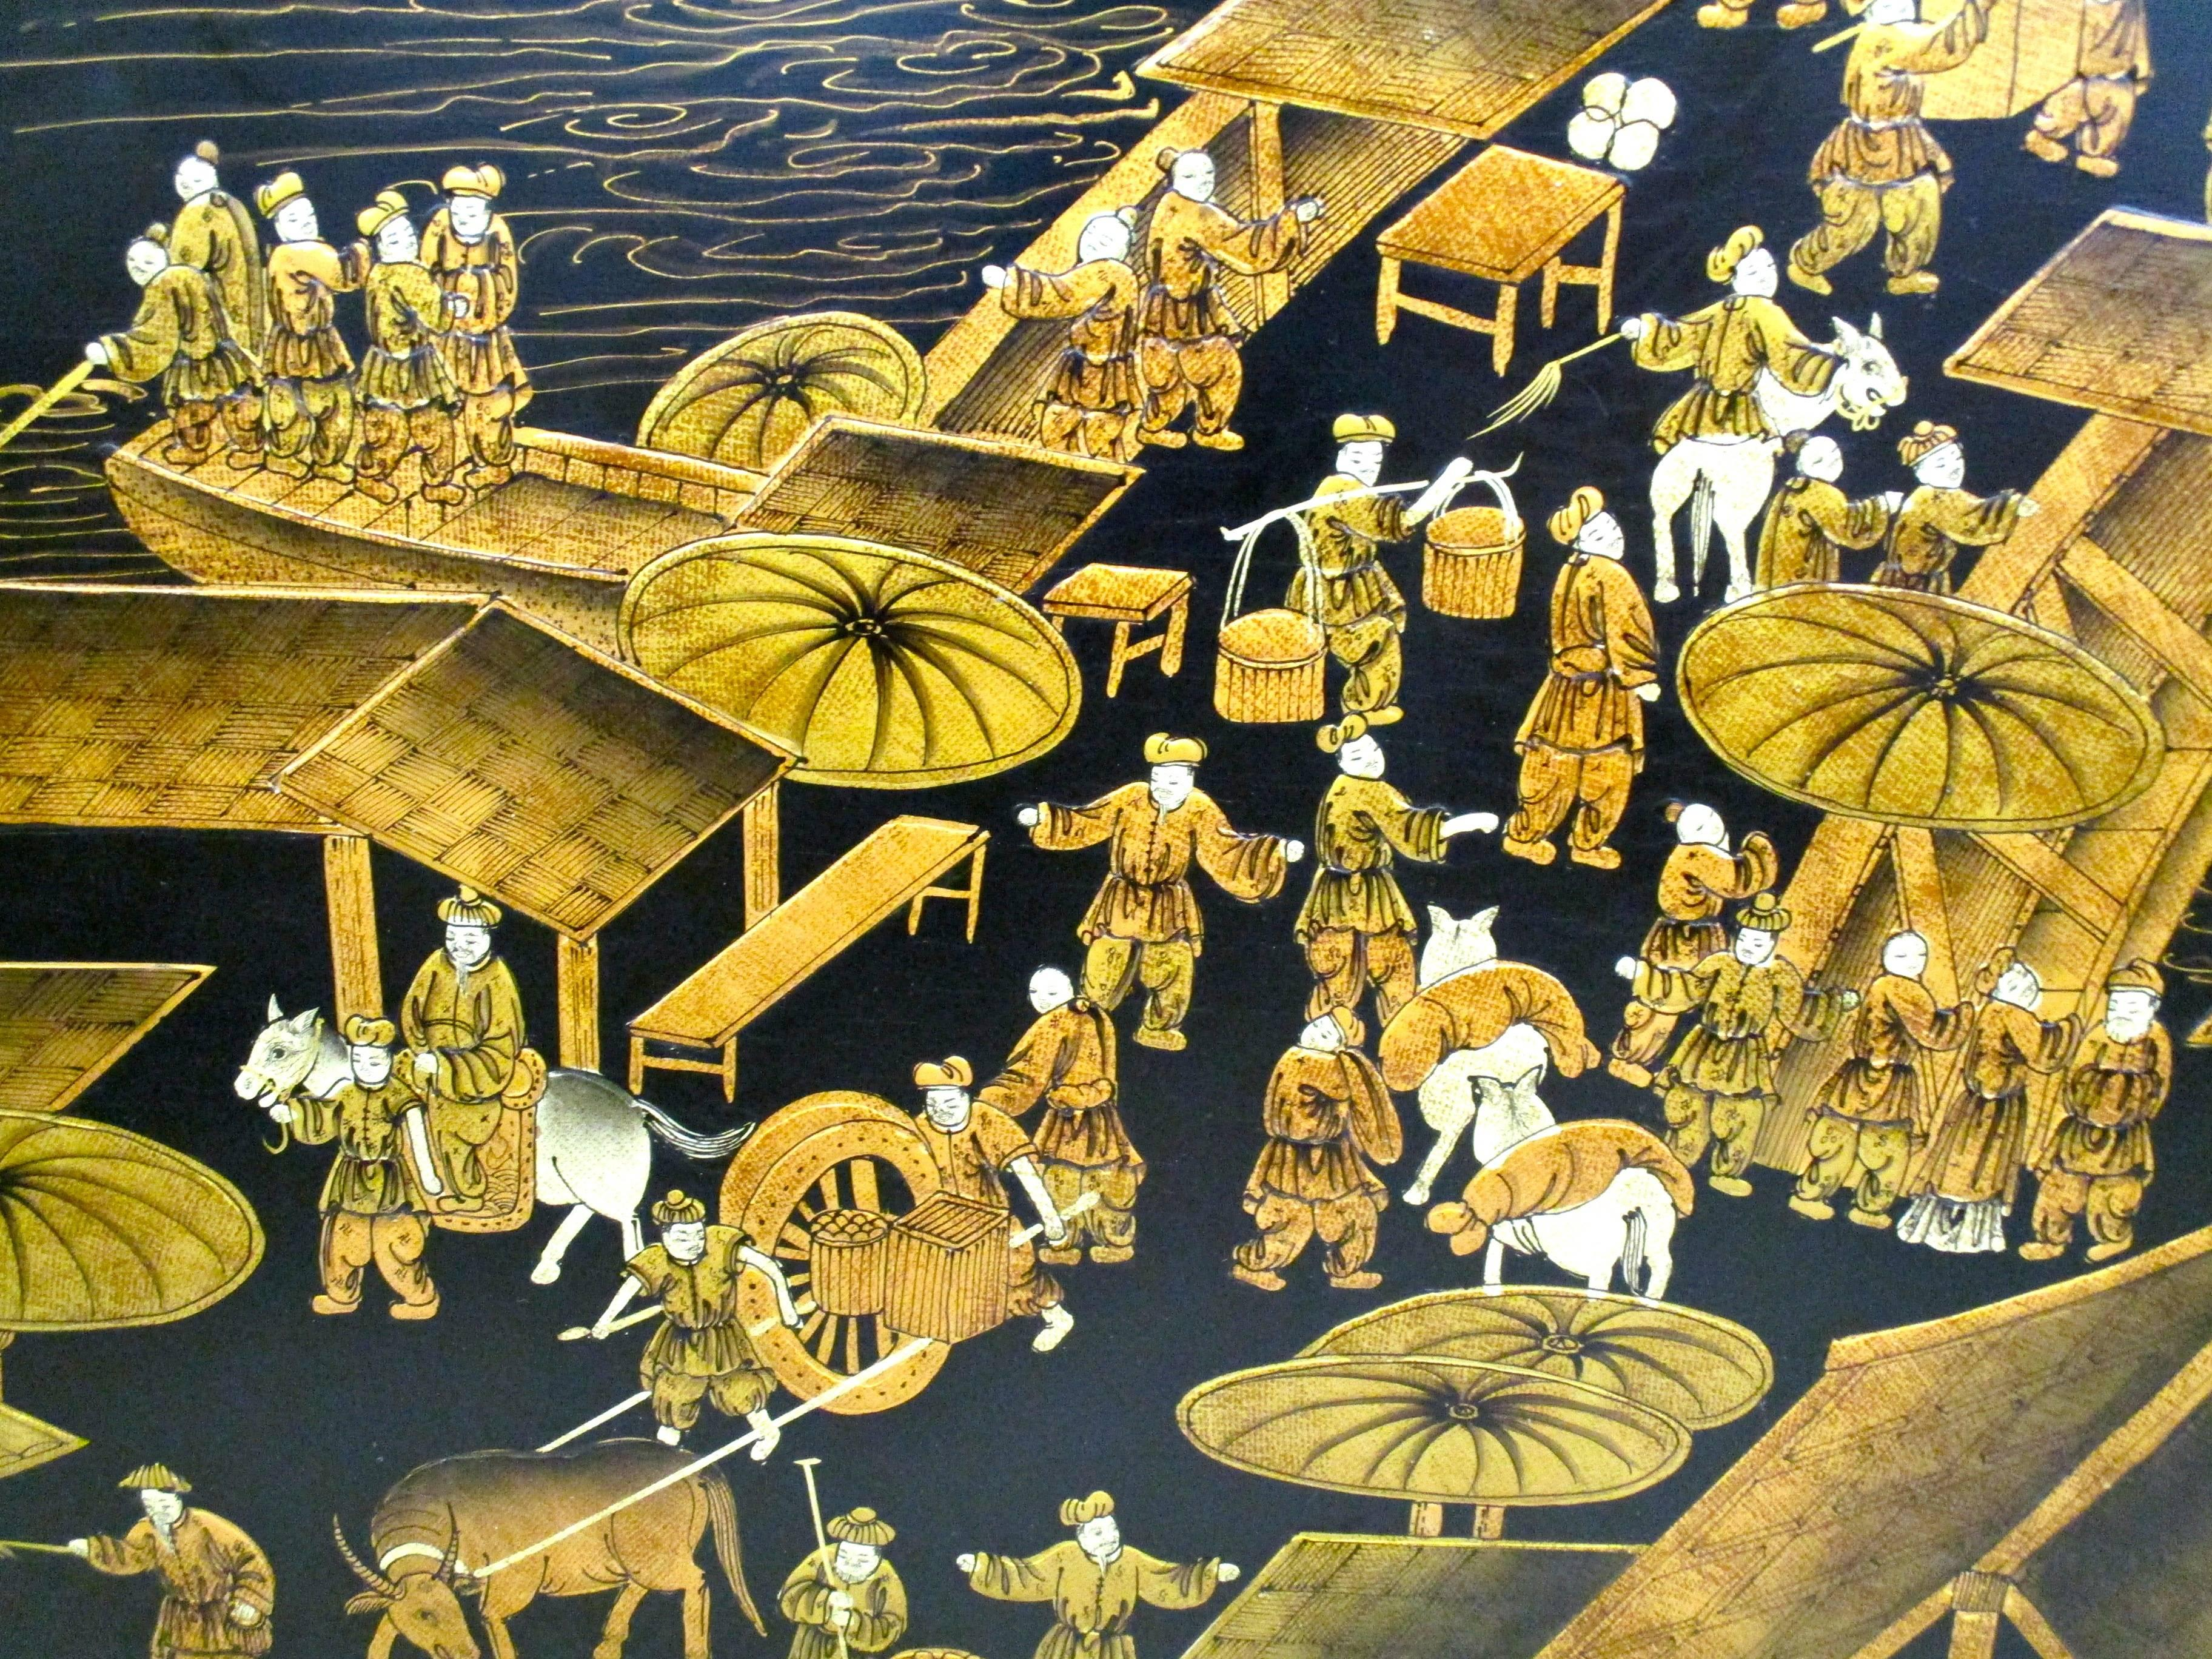 Chinese Original Black Lacquer Wall Painting Plaque Panel Art For ...